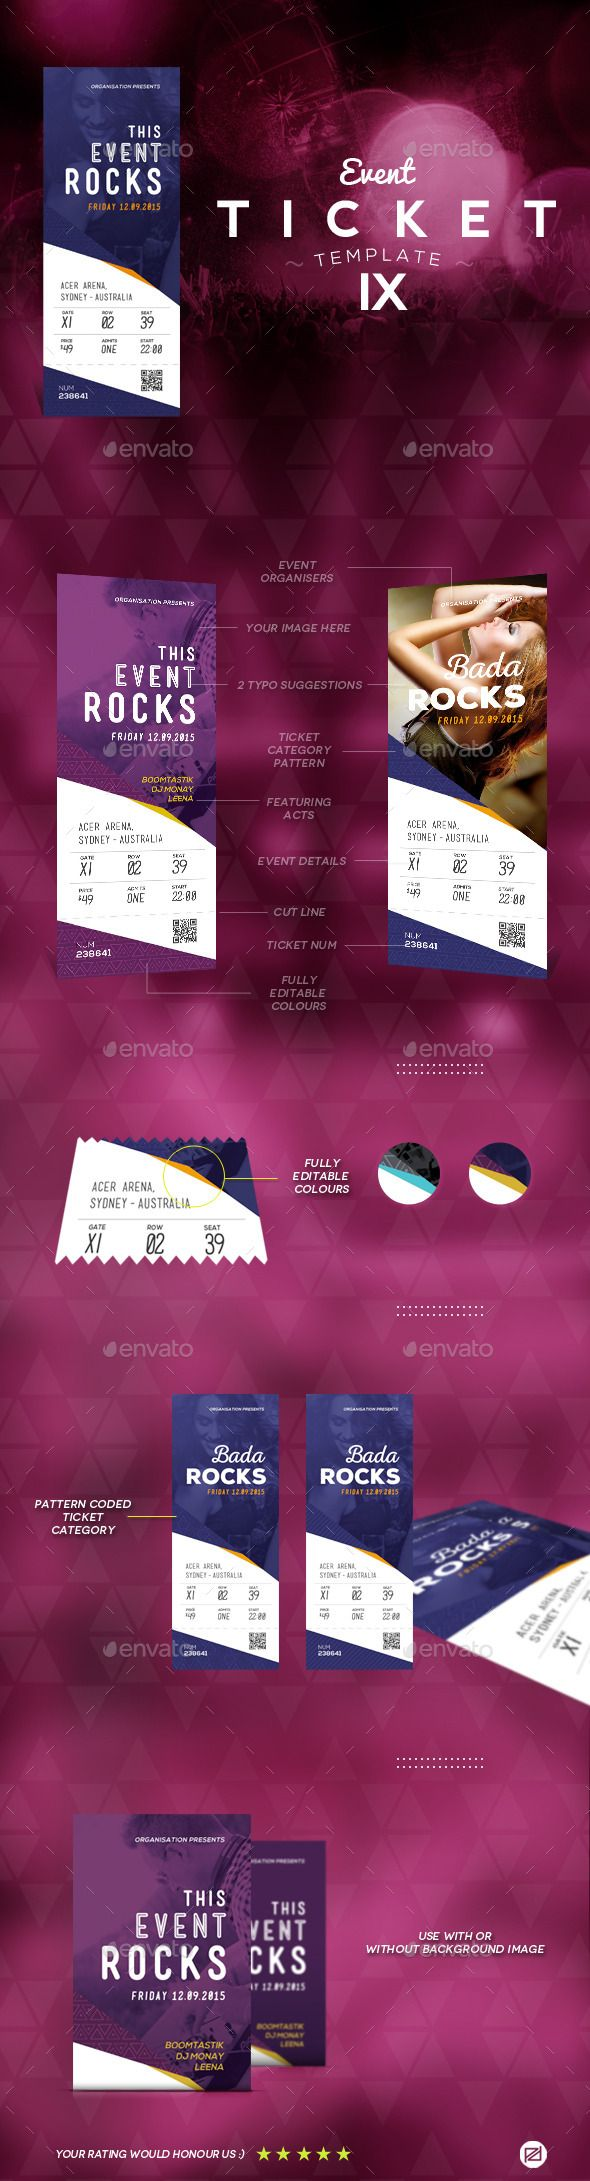 25 best ideas about event ticket template on pinterest event ticket printing event tickets for Concert ticket template psd